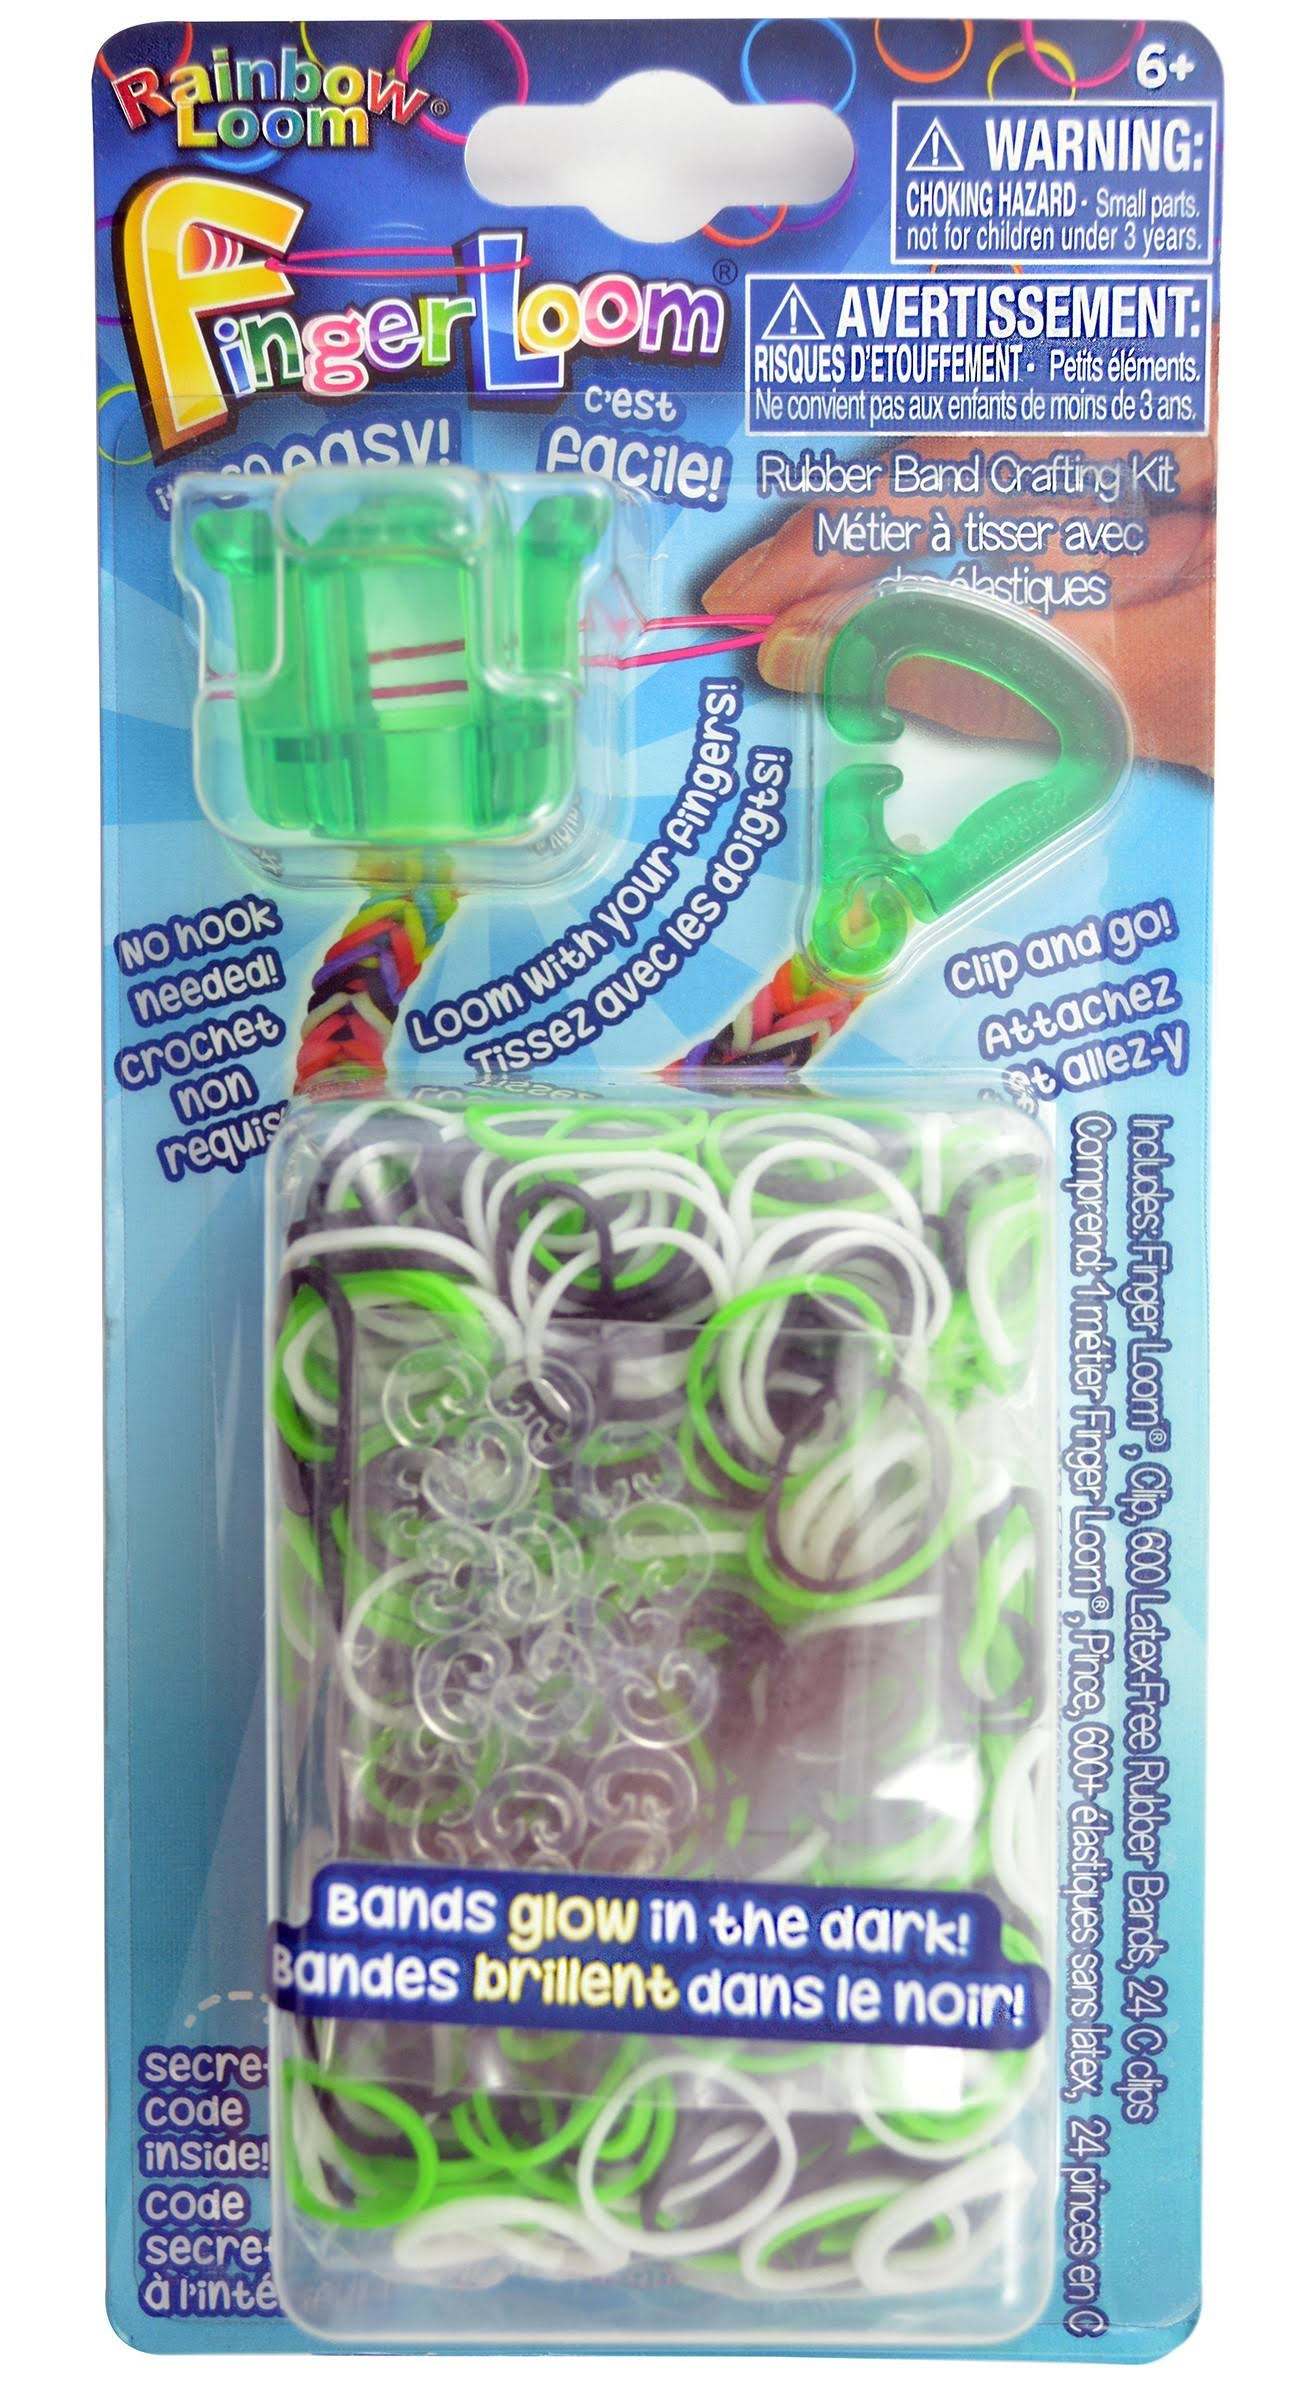 Rainbow Loom Finger Loom Rubber Band Crafting Kit - Green